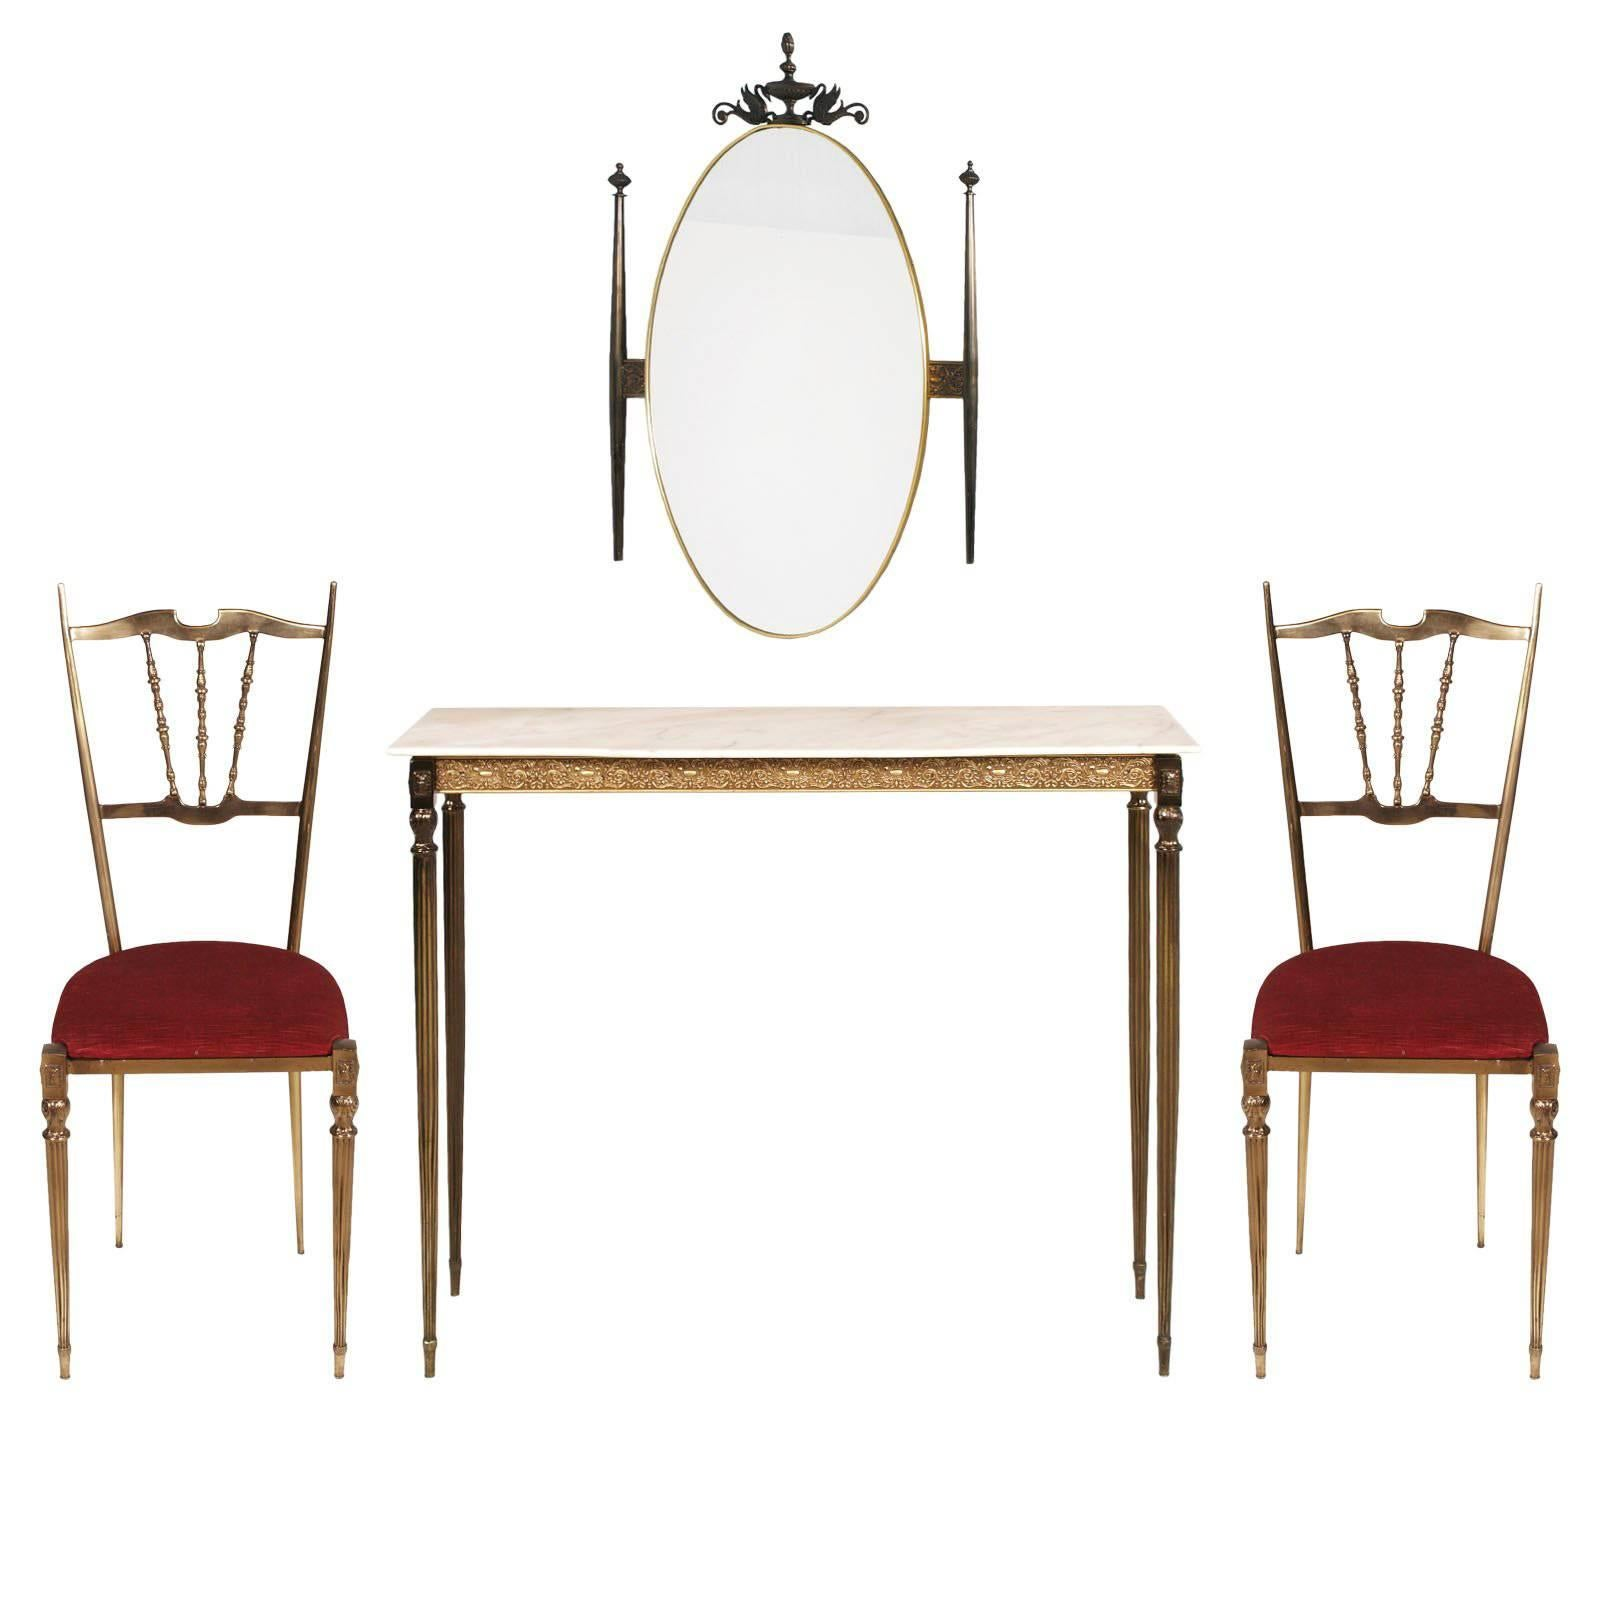 1930s Italy Art Nouveau Brass Console, wall Mirror & side Chairs Gio Ponti Style